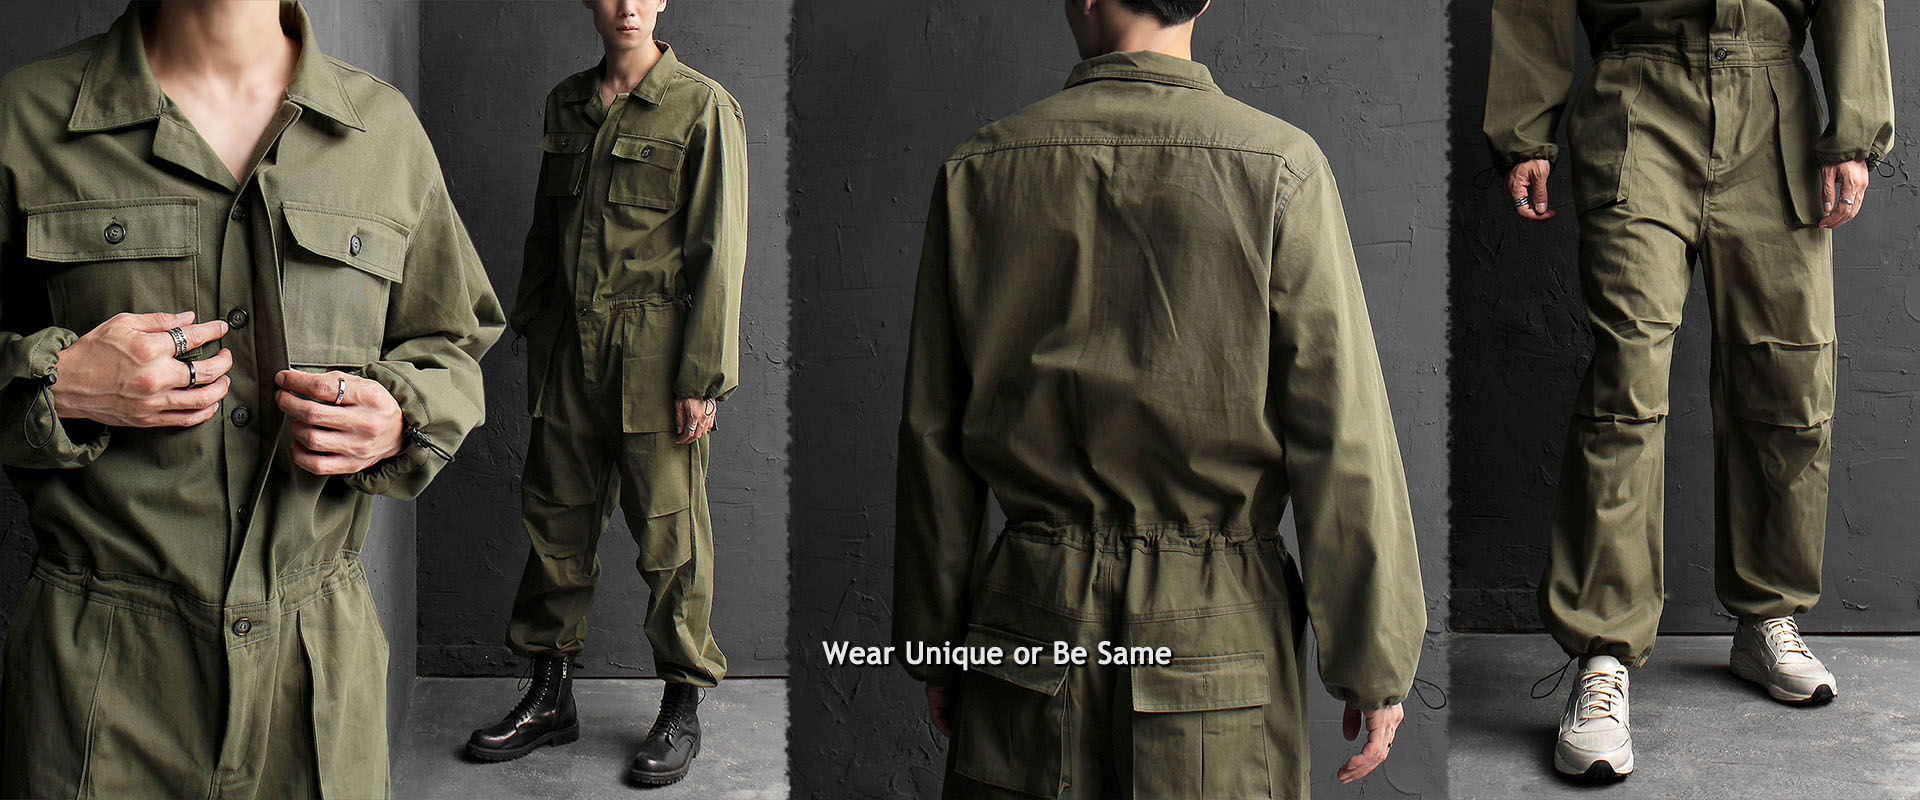 Loose Fit Overall One Piece Military Army Jumpsuit 621